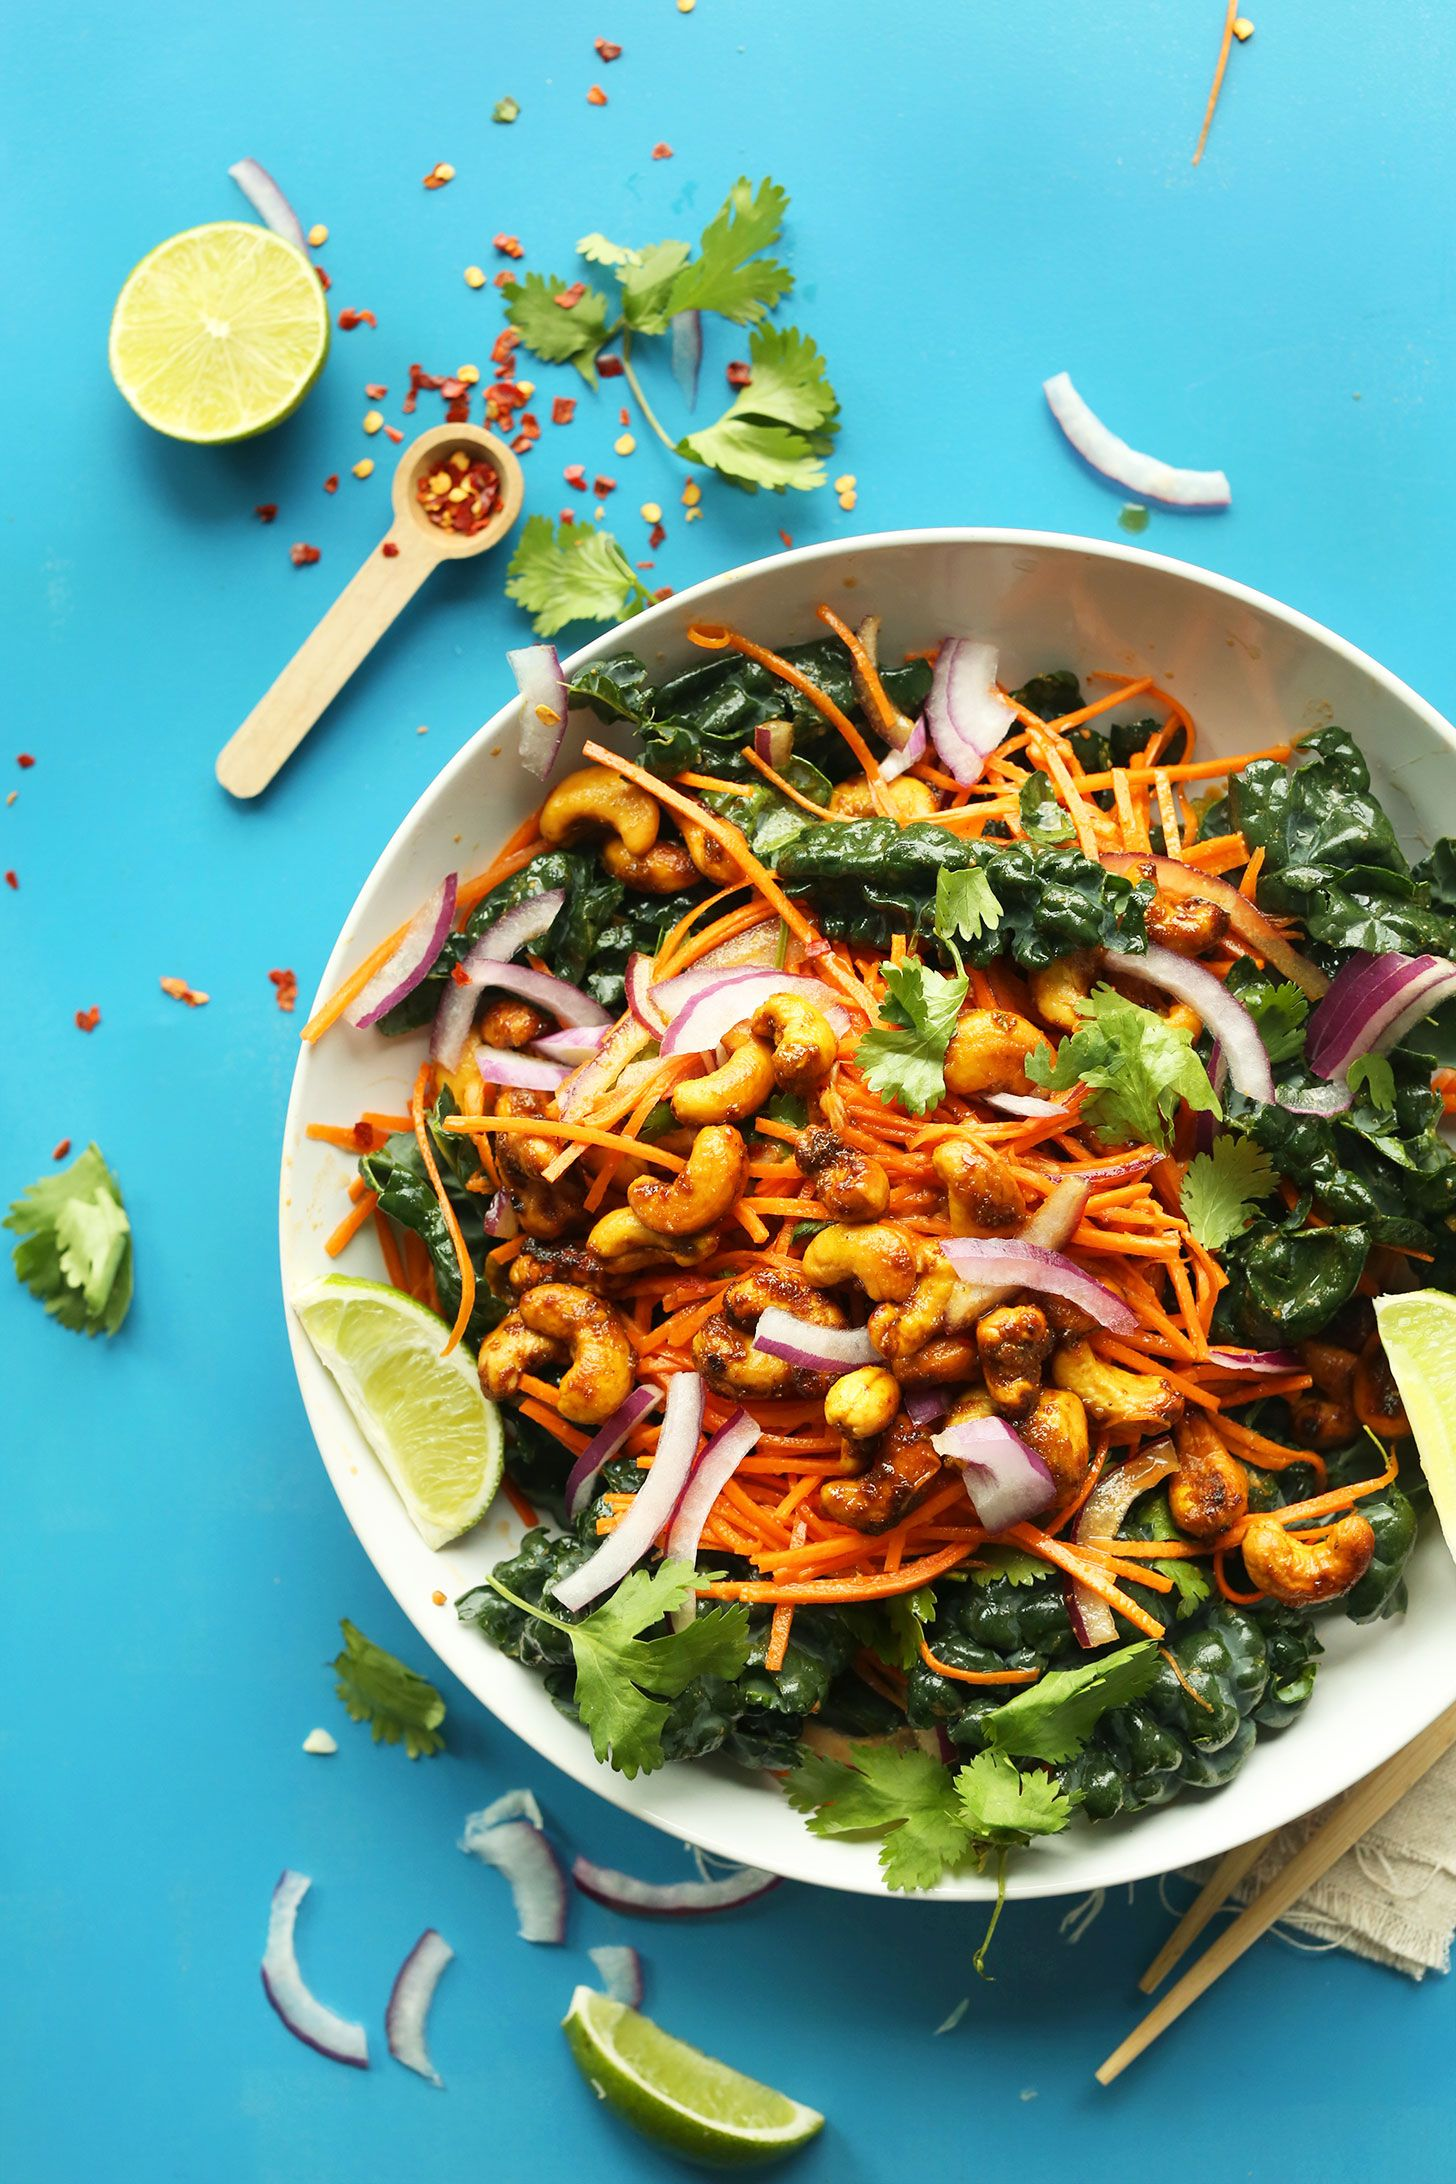 An easy, 30-minute Thai-inspired carrot and kale salad with a savory-sweet dressing and curried cashews! Flavorful, hearty, so delicious!